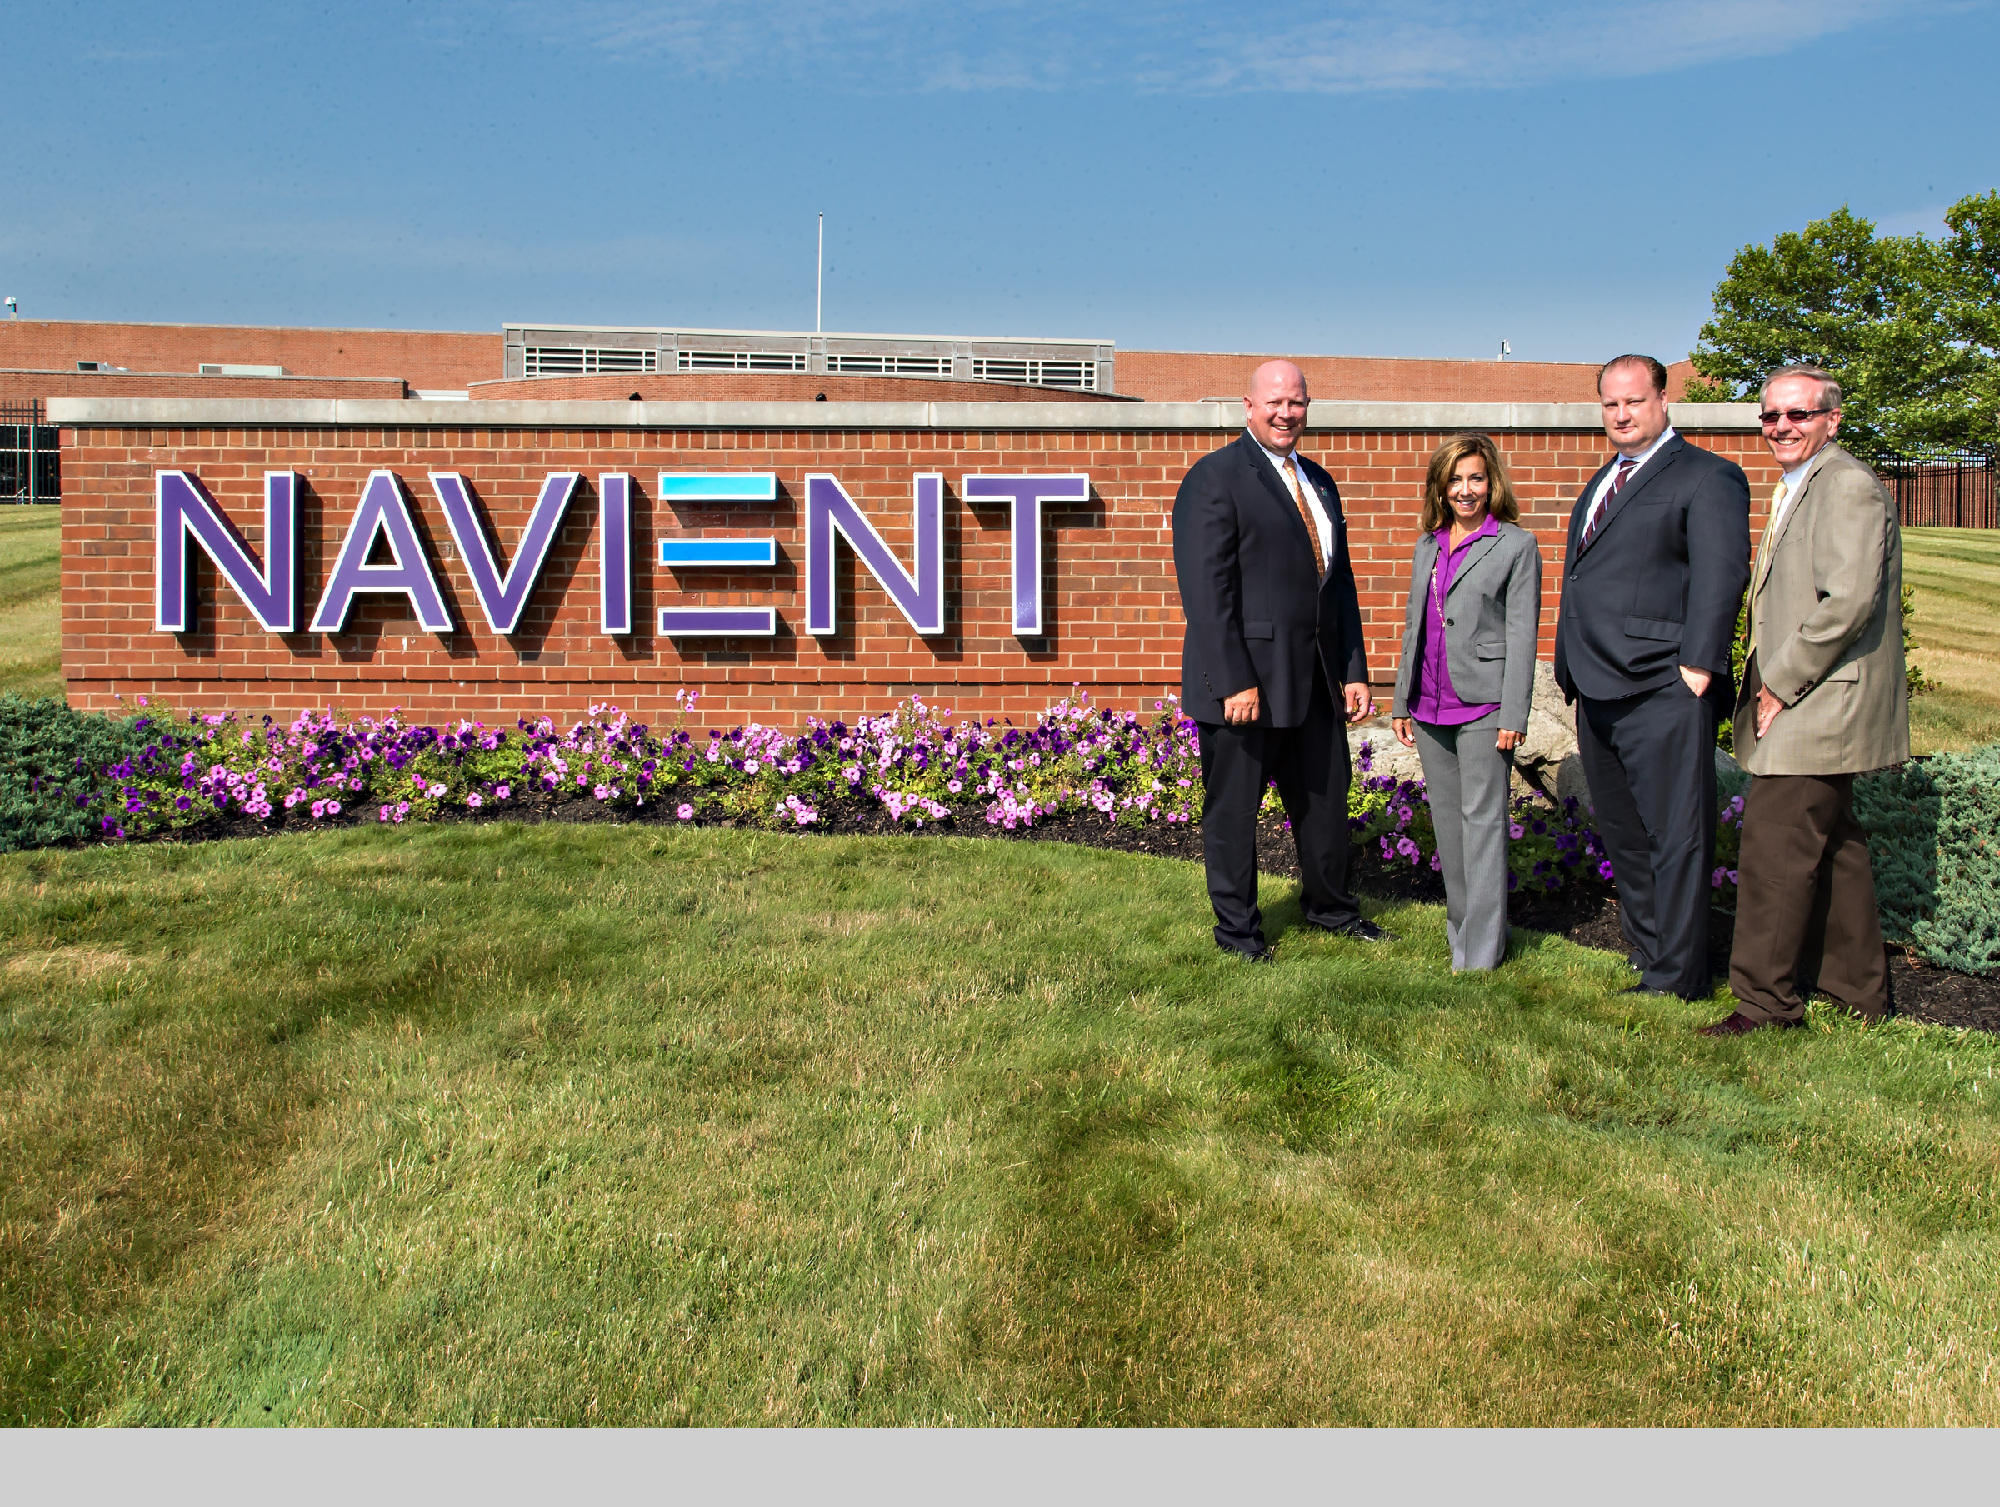 Navient Hit With Suit Over 'Deceptive' Student Loan Practices